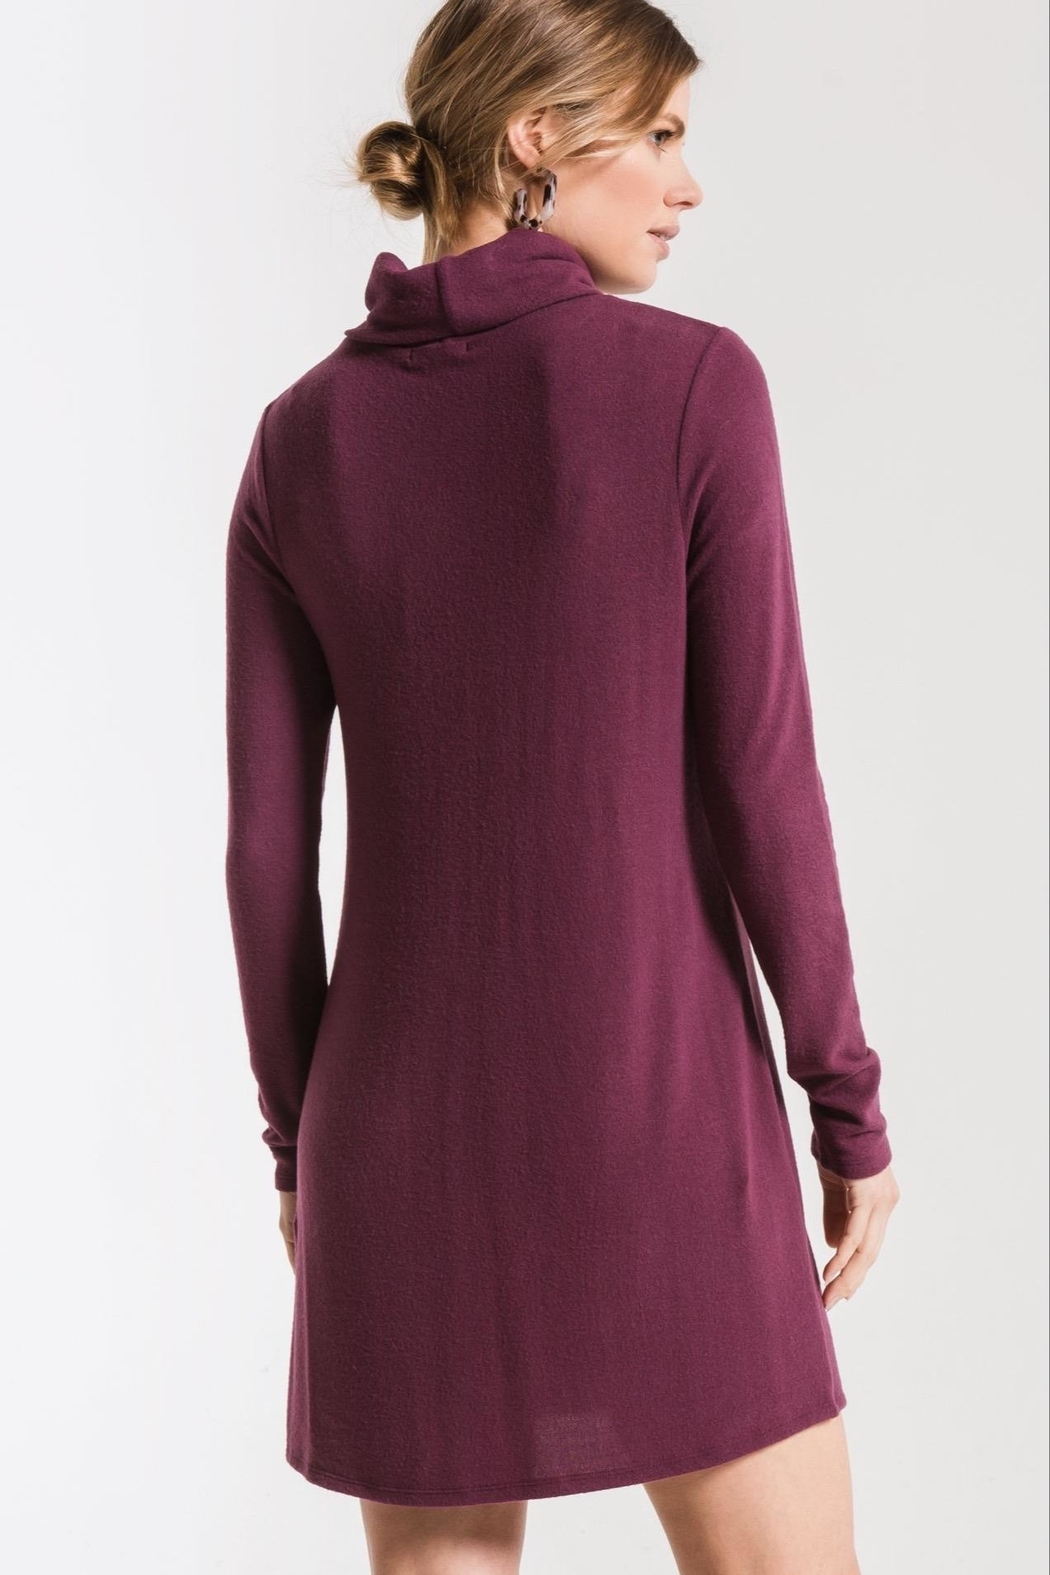 z supply Turtleneck Sweater Dress - Side Cropped Image